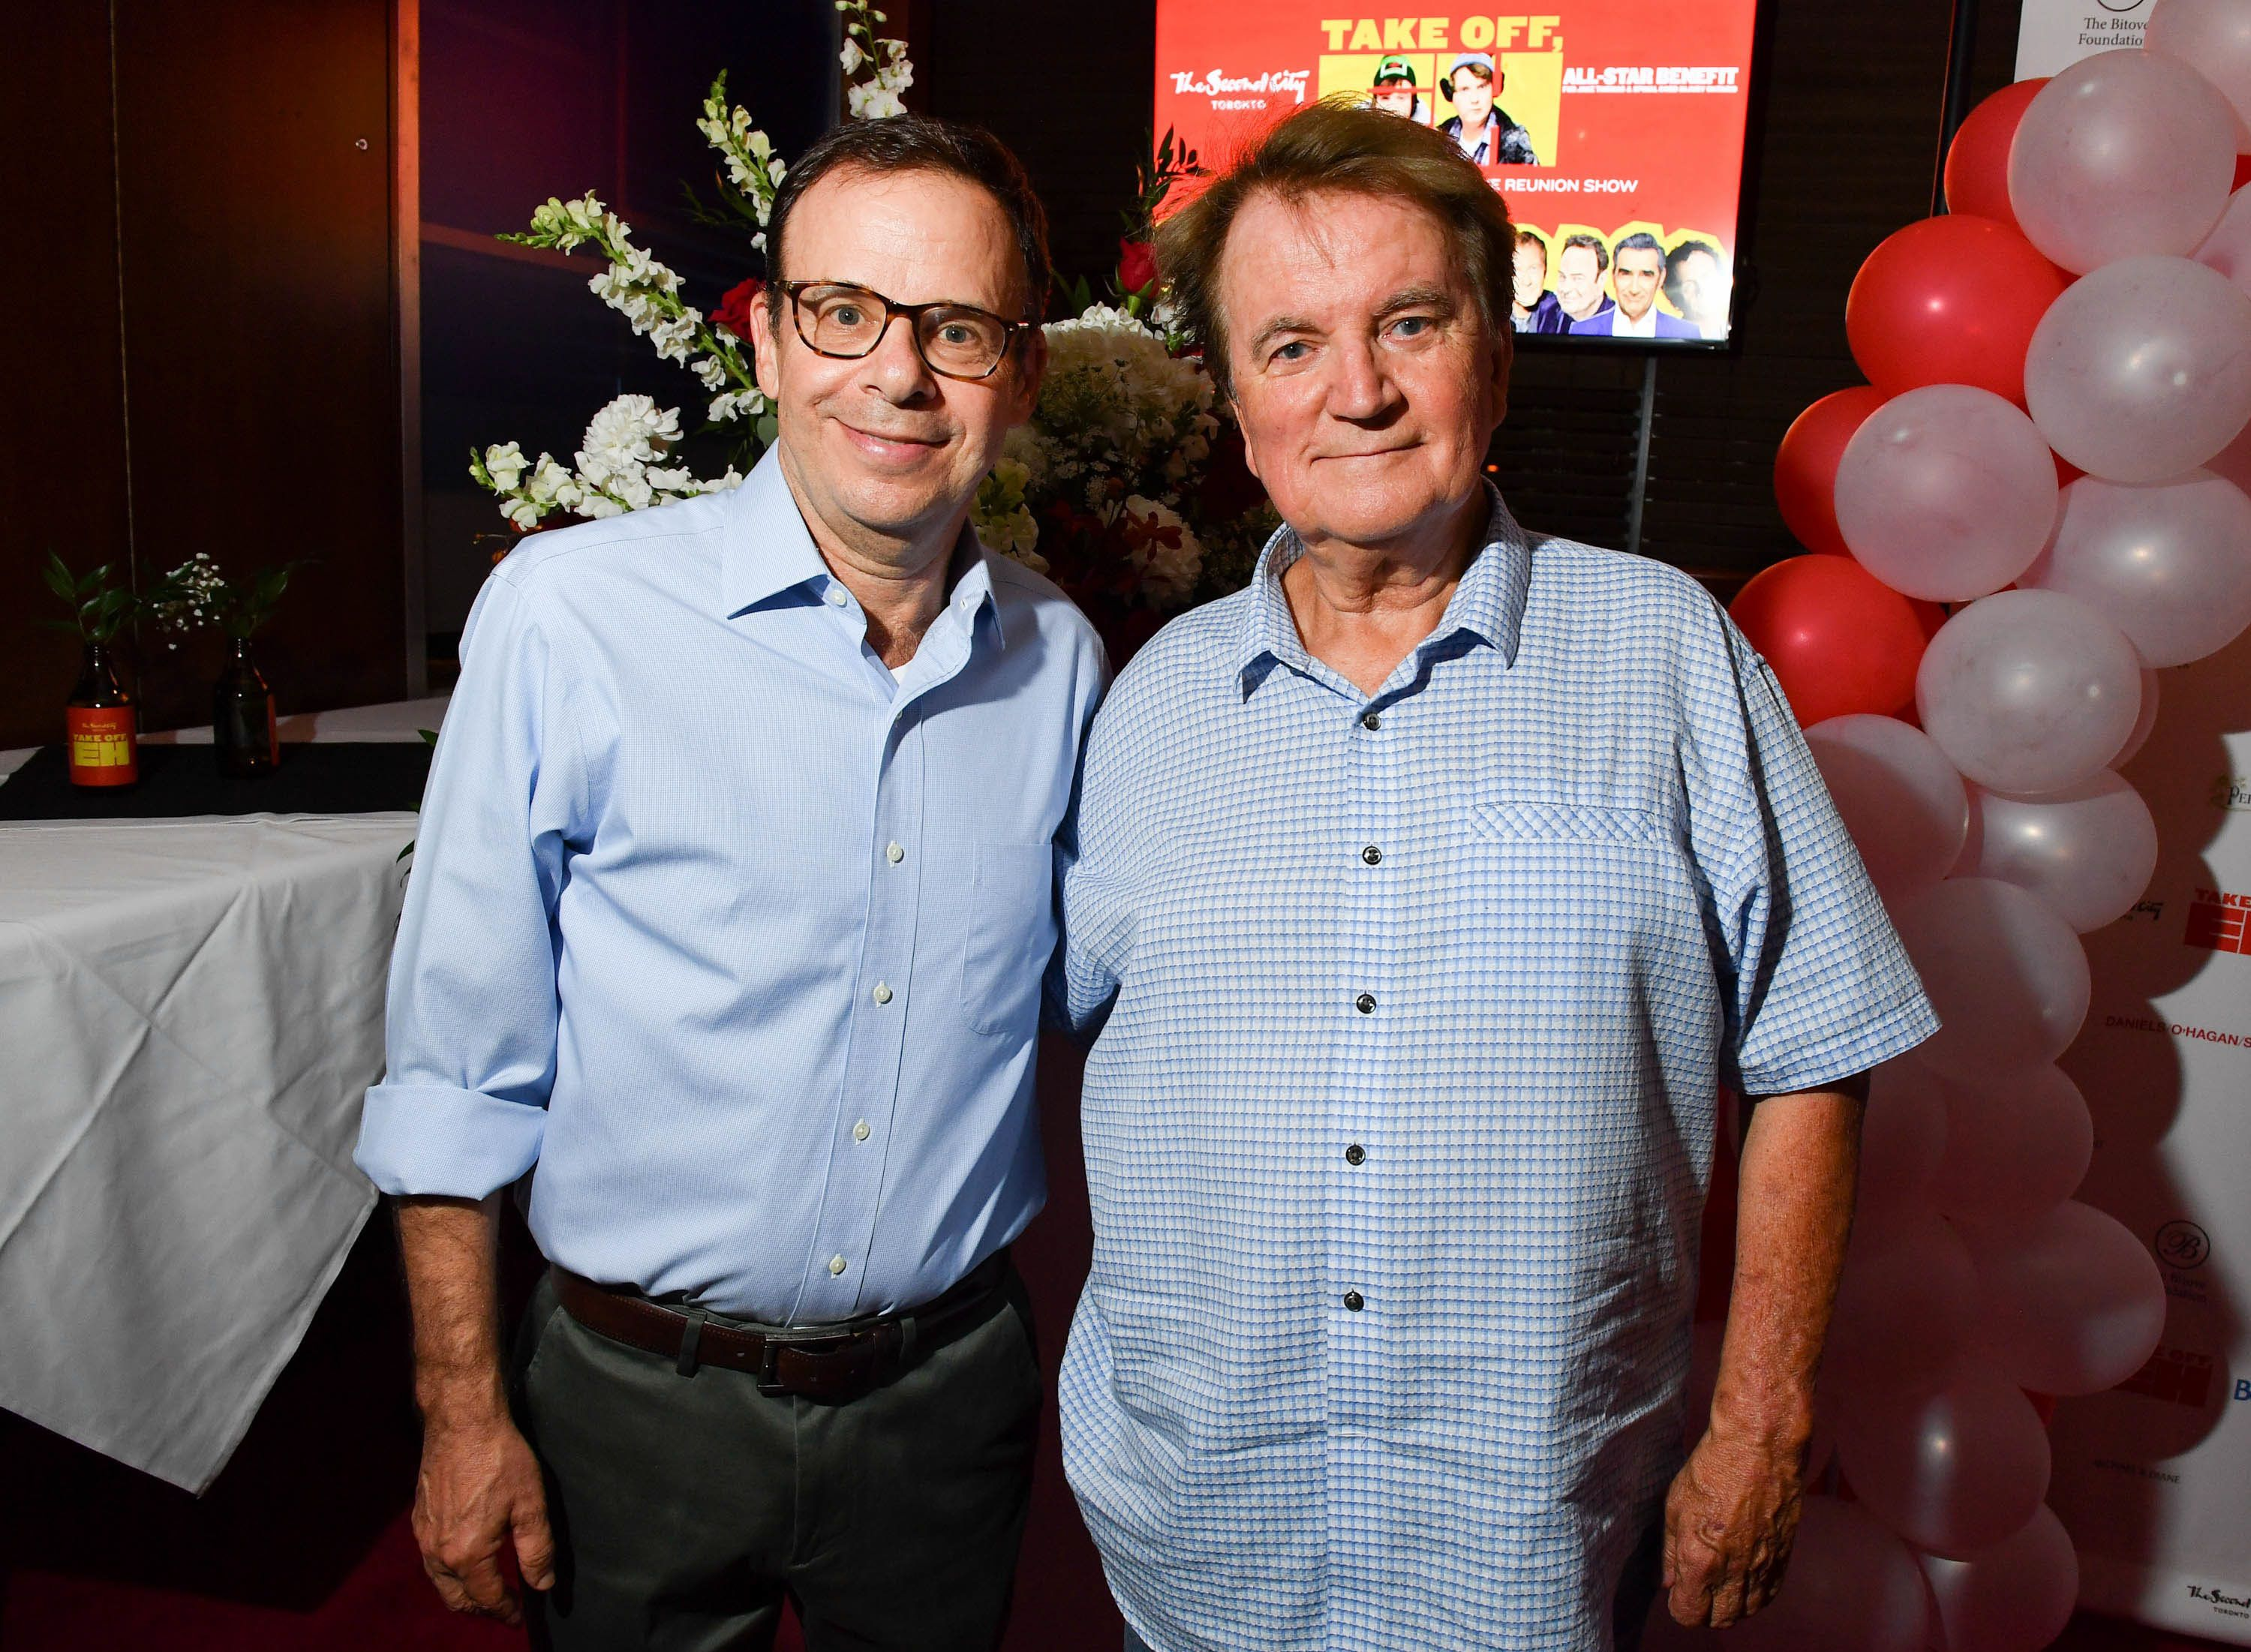 TORONTO, ON - JULY 18:  SCTV cast  Rick Moranis and Dave Thomas attend the Dave Thomas And The Second City Present 'Take Off, EH!' An All-Star Benefit after party for Jake Thomas And Spinal Cord Injury Ontario  held at Wayne Gretzky's on July 18, 2017 in Toronto, Canada.  (Photo by George Pimentel/Getty Images)